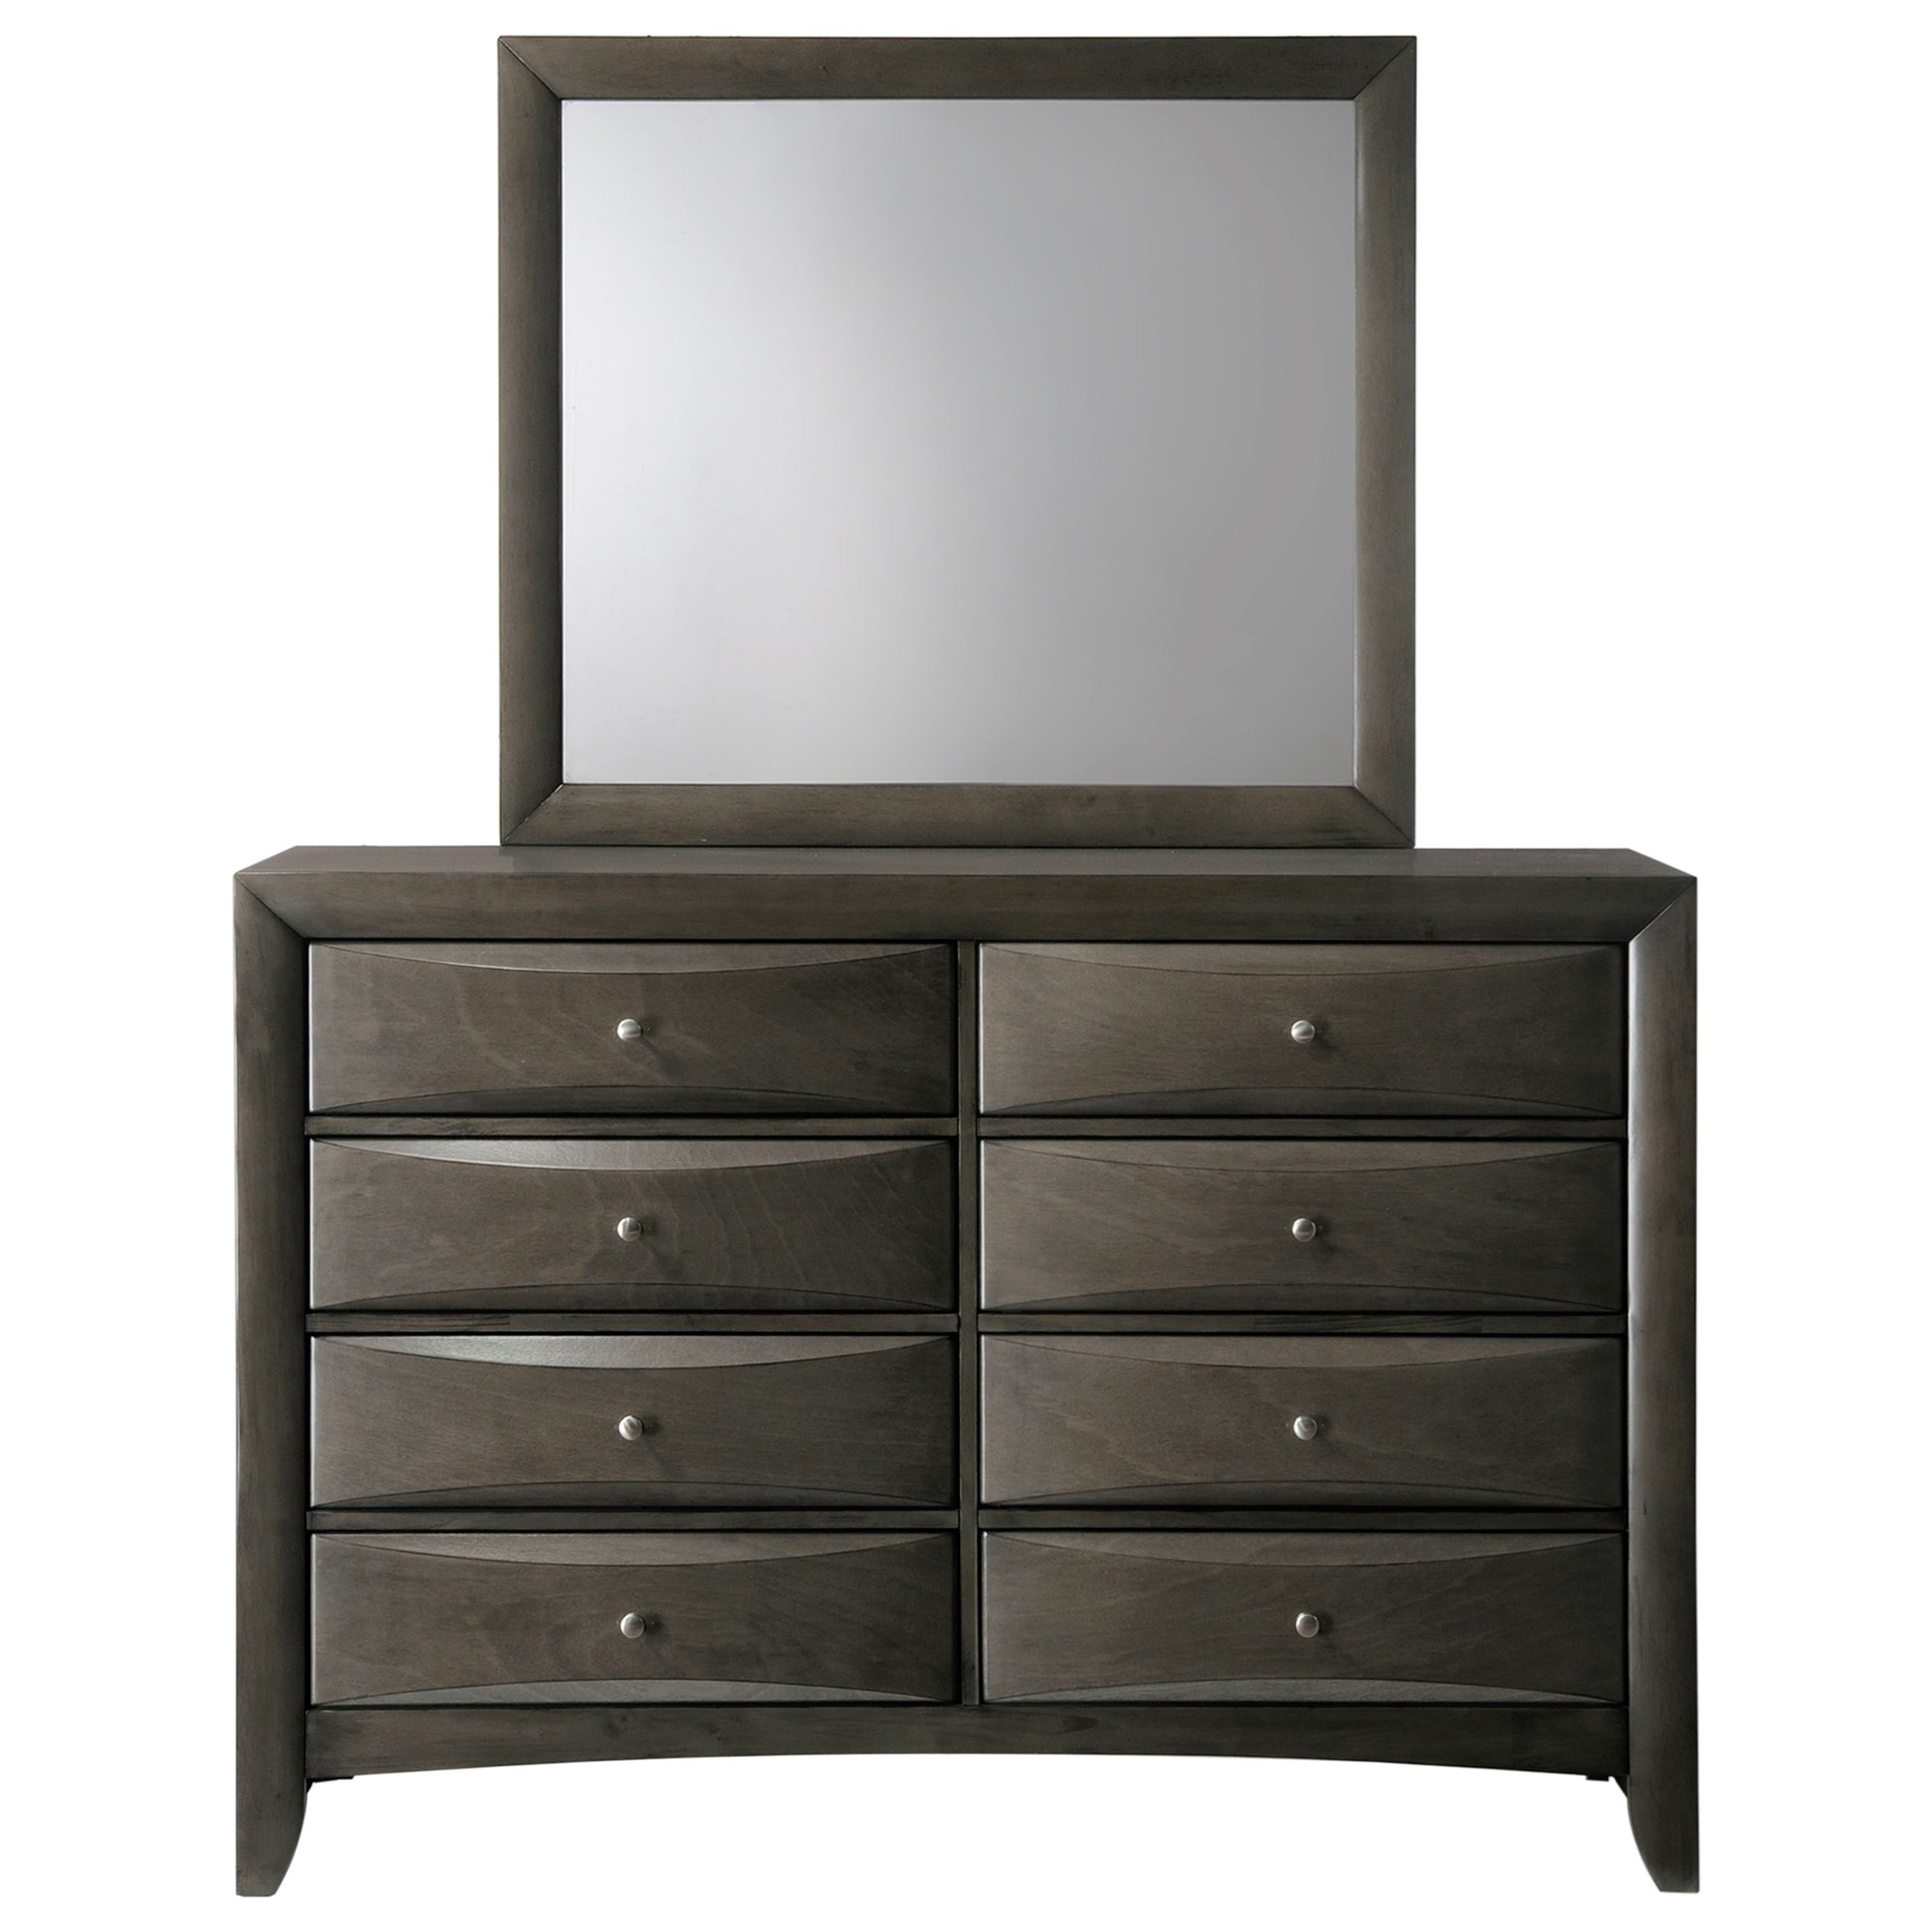 Emily Dresser and Mirror by Crown Mark at Northeast Factory Direct